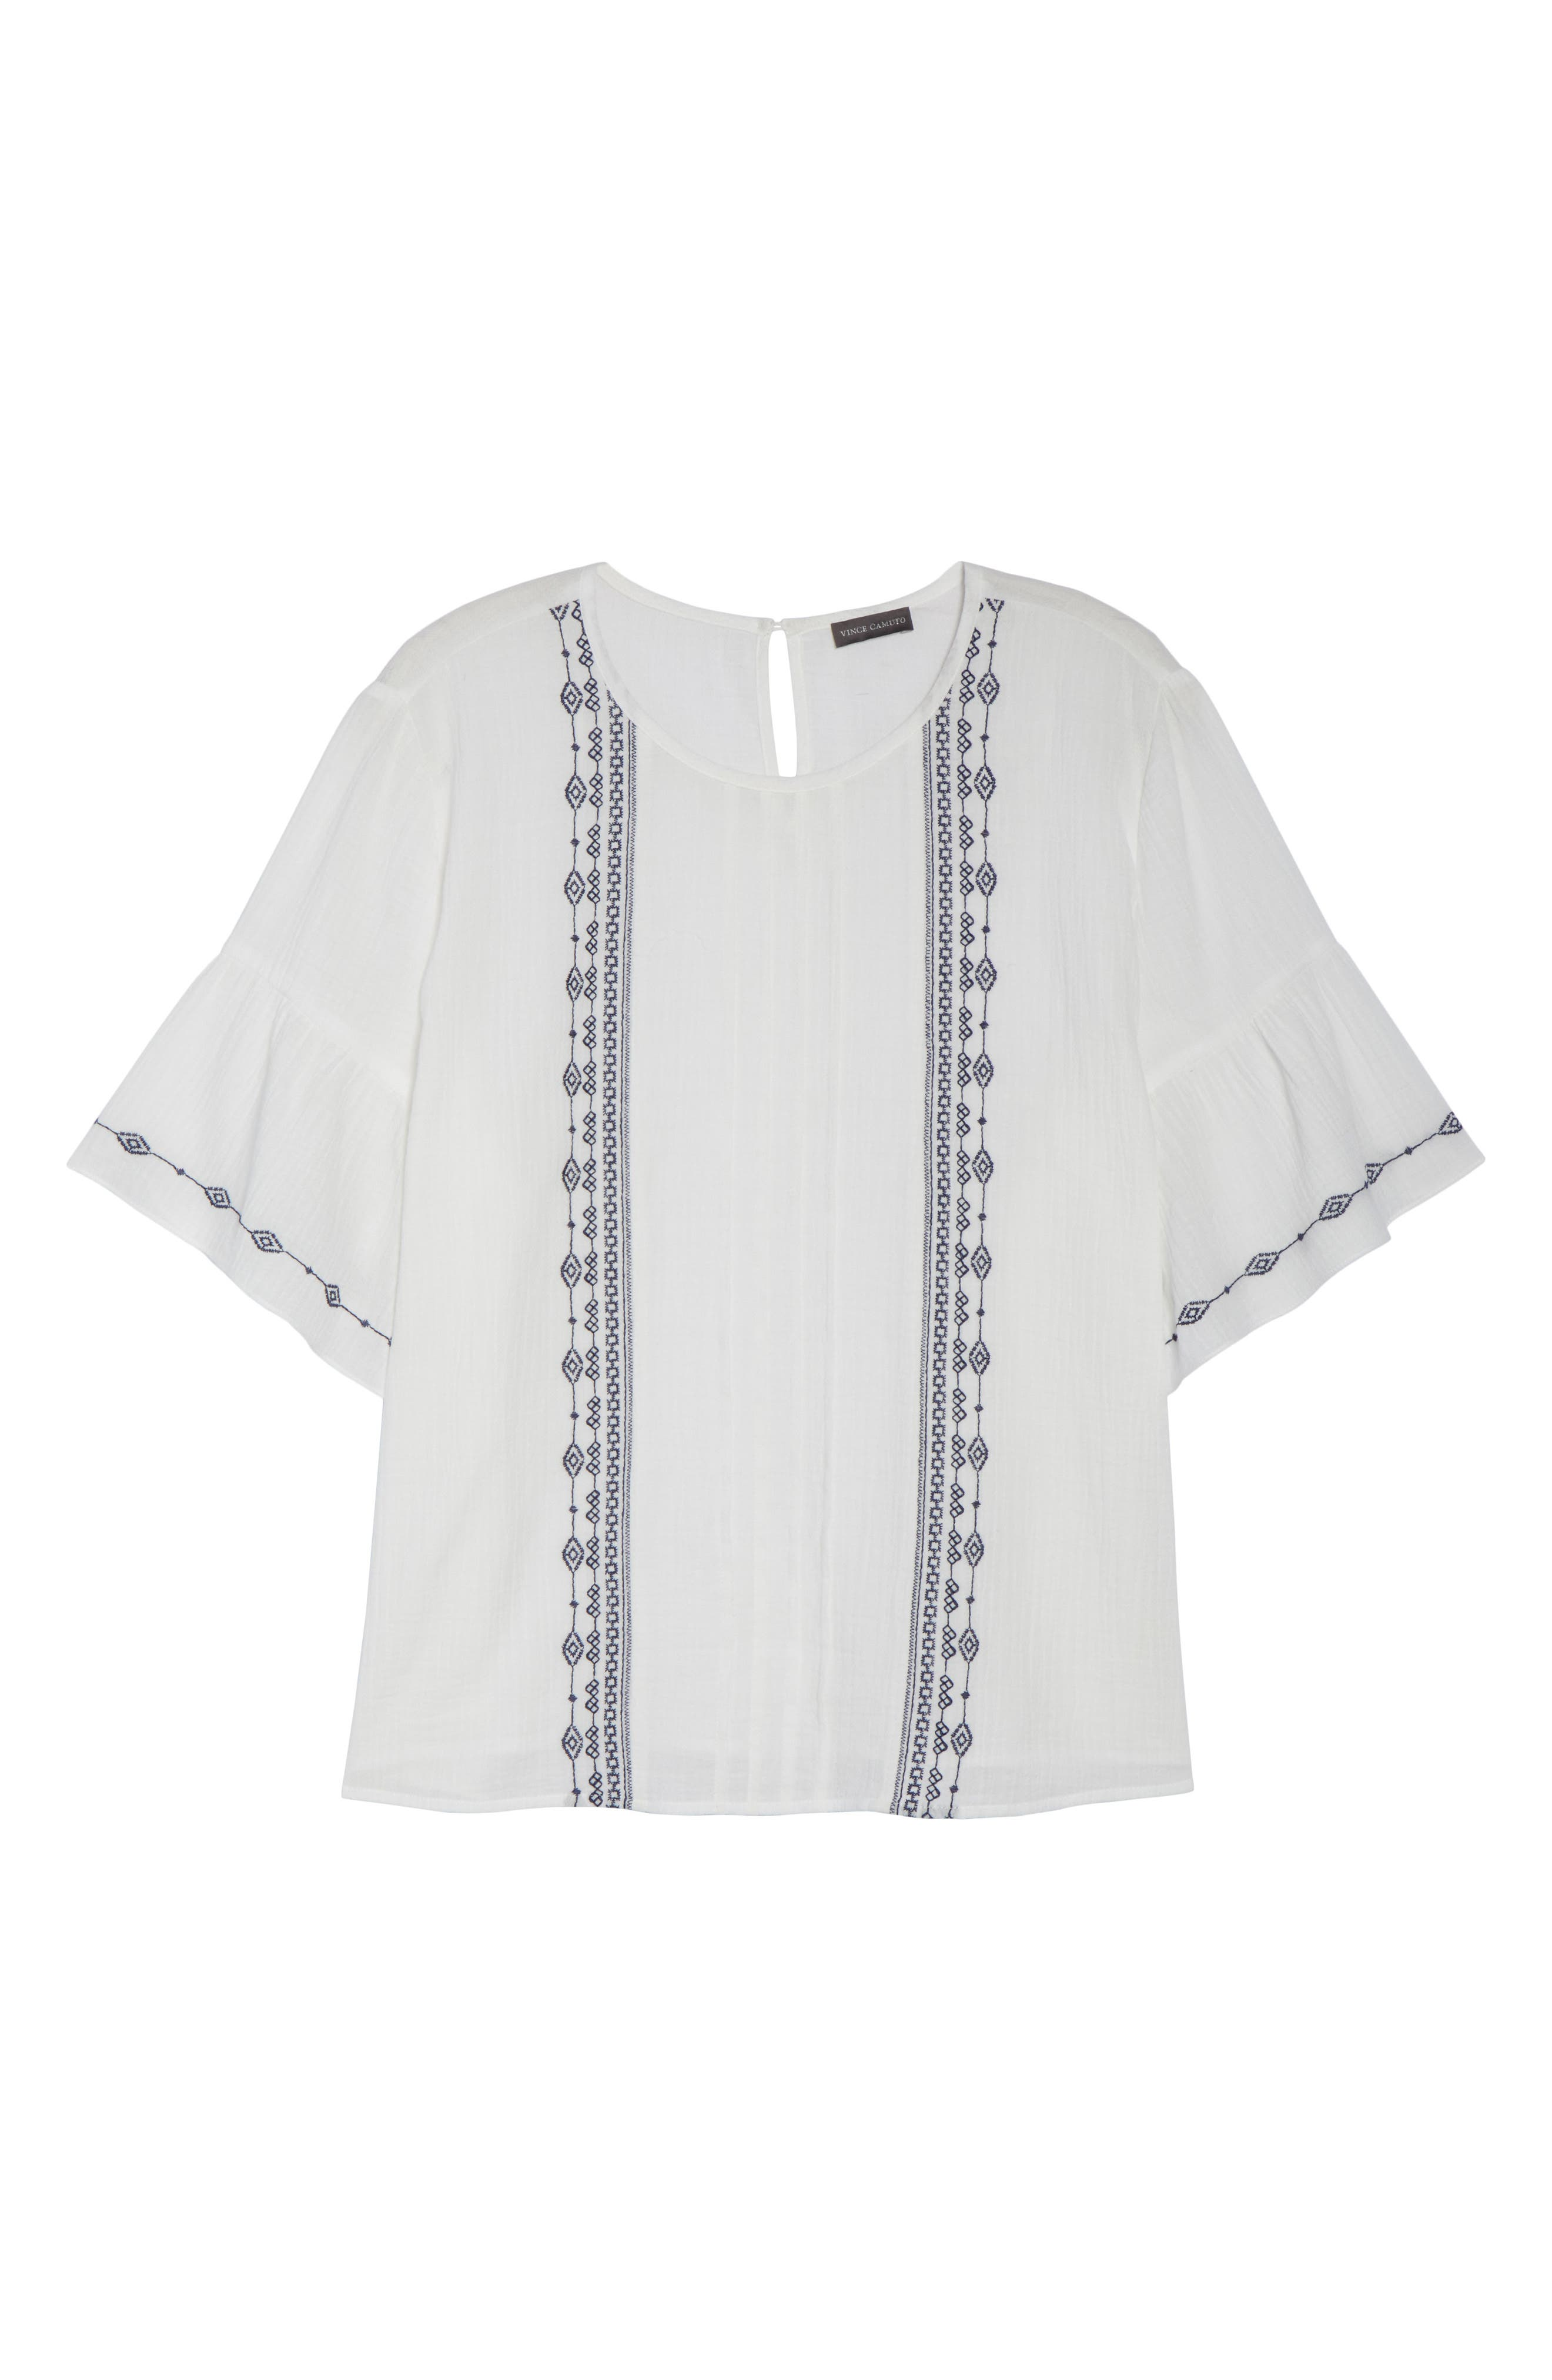 Ruffle Sleeve Embroidered Crinkle Cotton Top,                             Alternate thumbnail 6, color,                             ULTRA WHIT